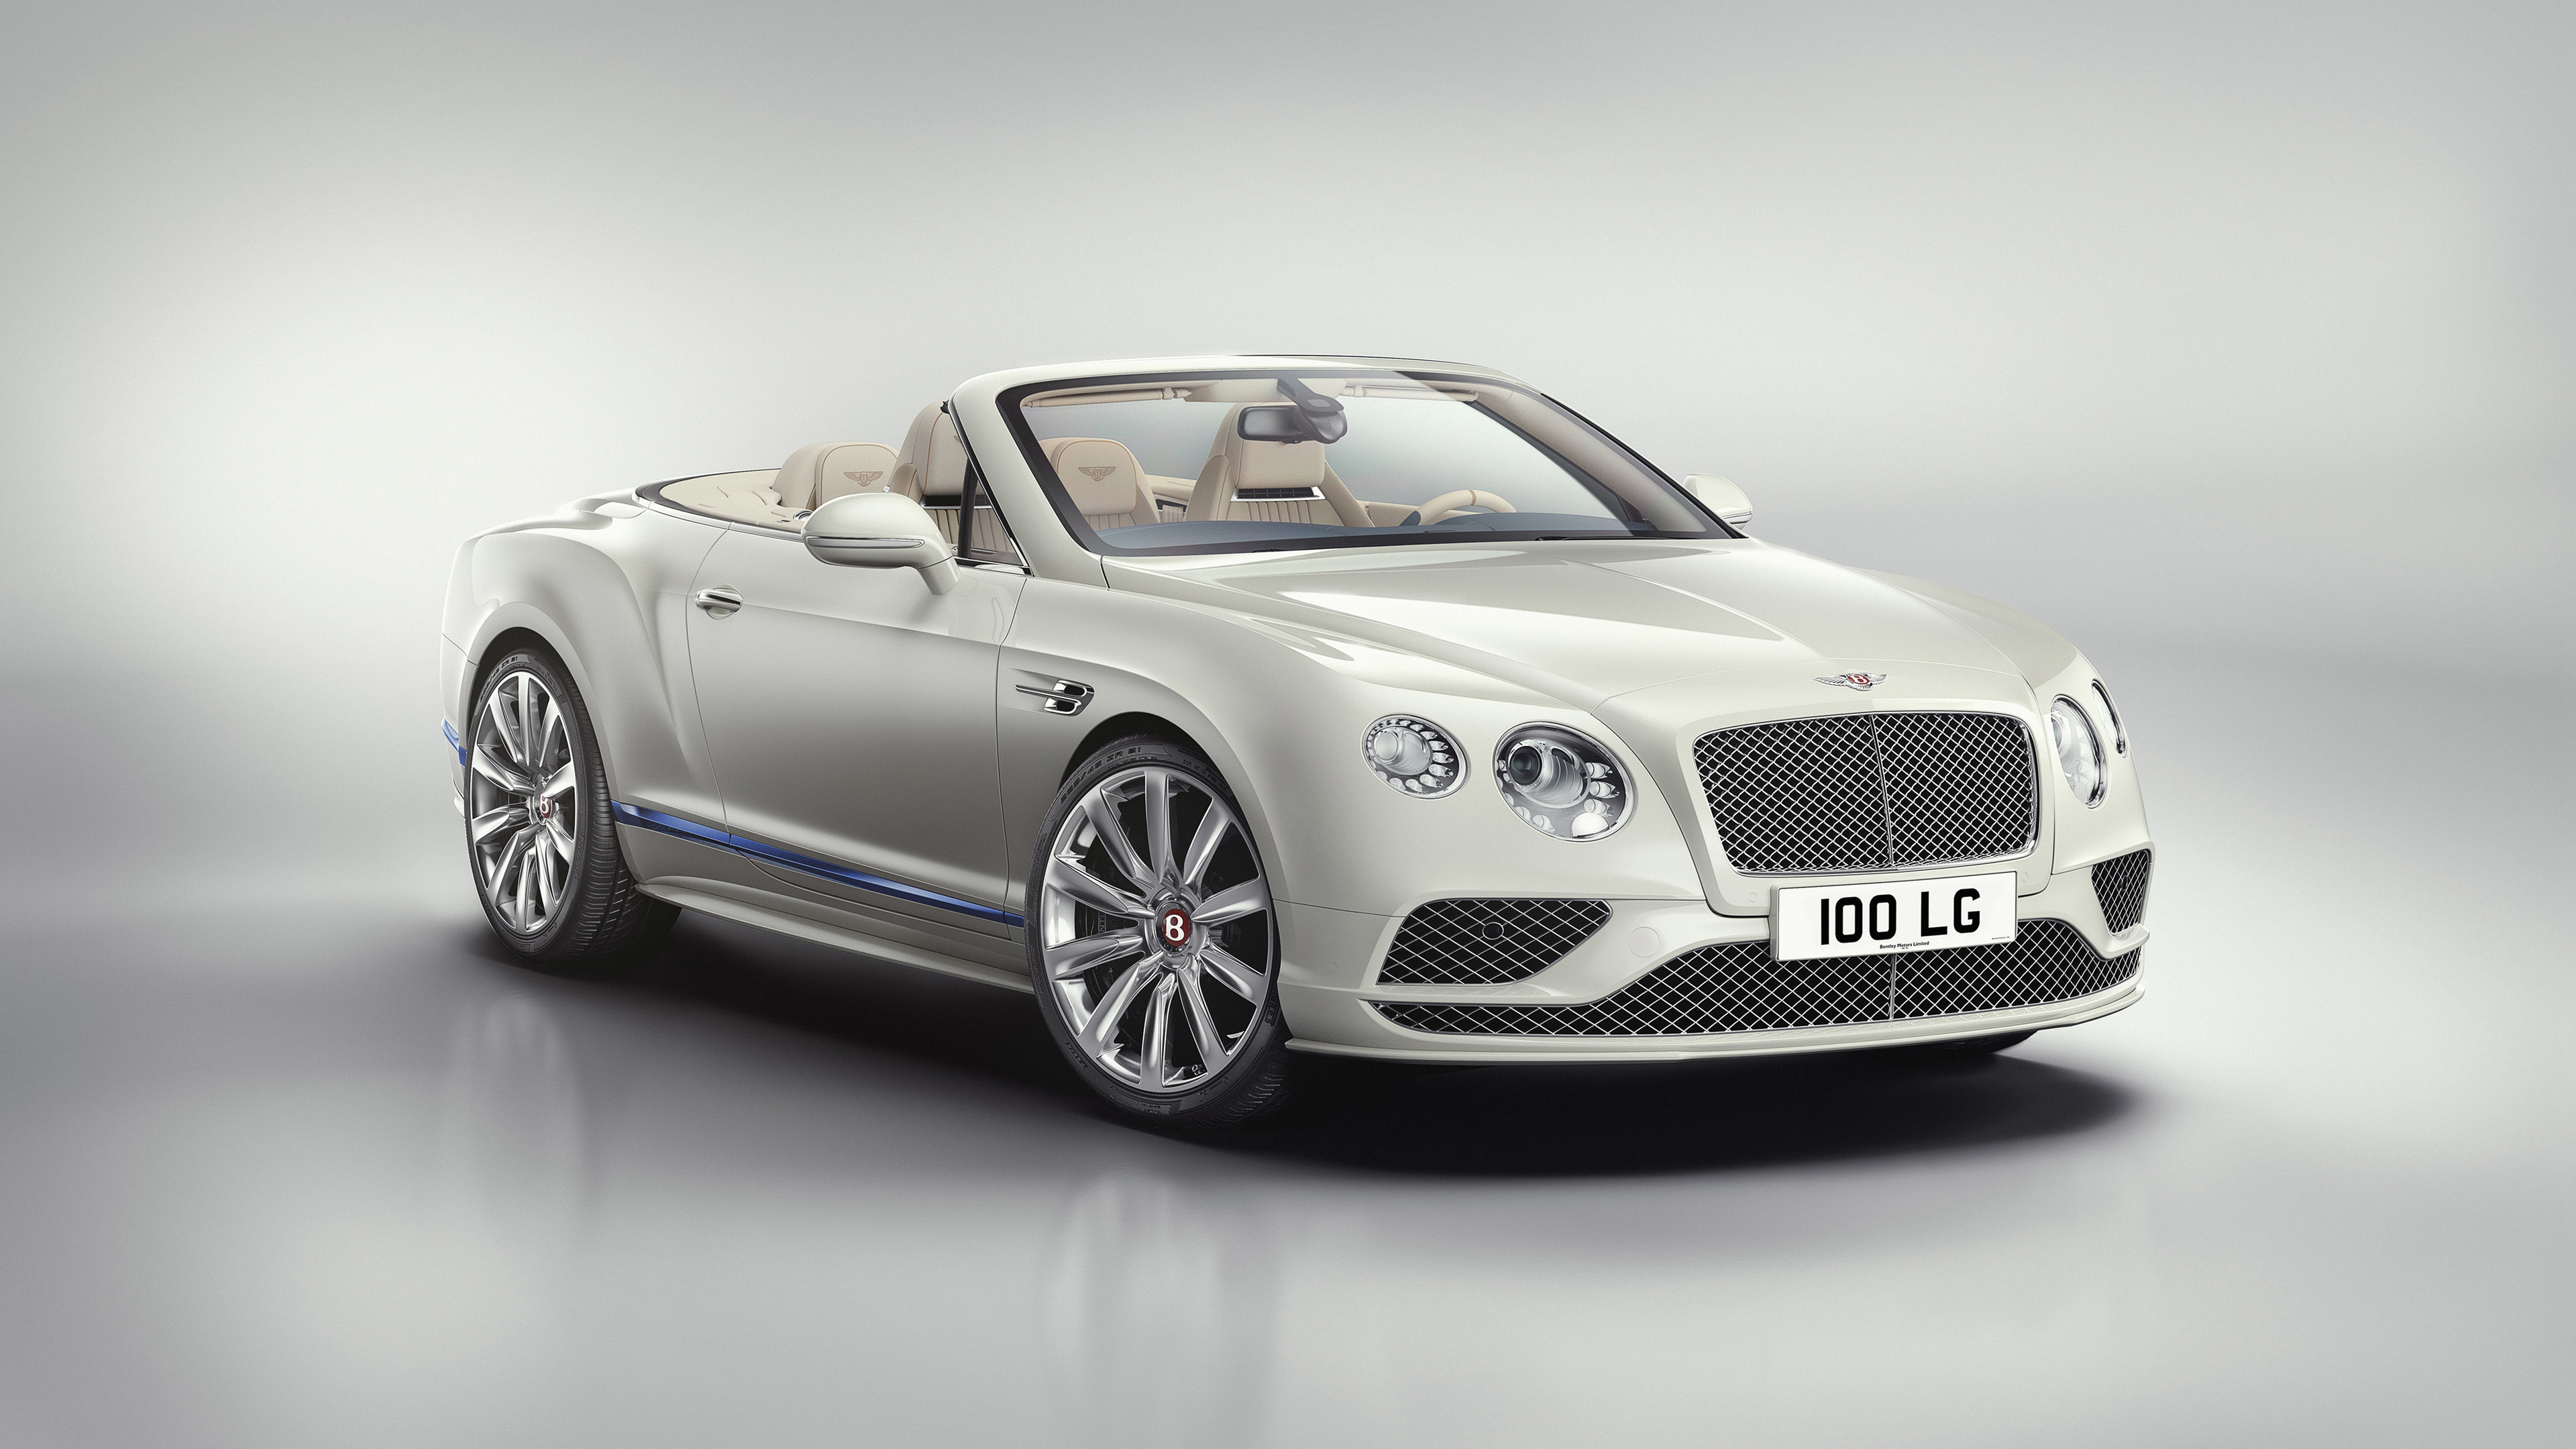 bentley continental gt v8 convertible galene edition 2017 1539105946 - Bentley Continental GT V8 Convertible Galene Edition 2017 - hd-wallpapers, bentley wallpapers, bentley continental wallpapers, 4k-wallpapers, 2018 cars wallpapers